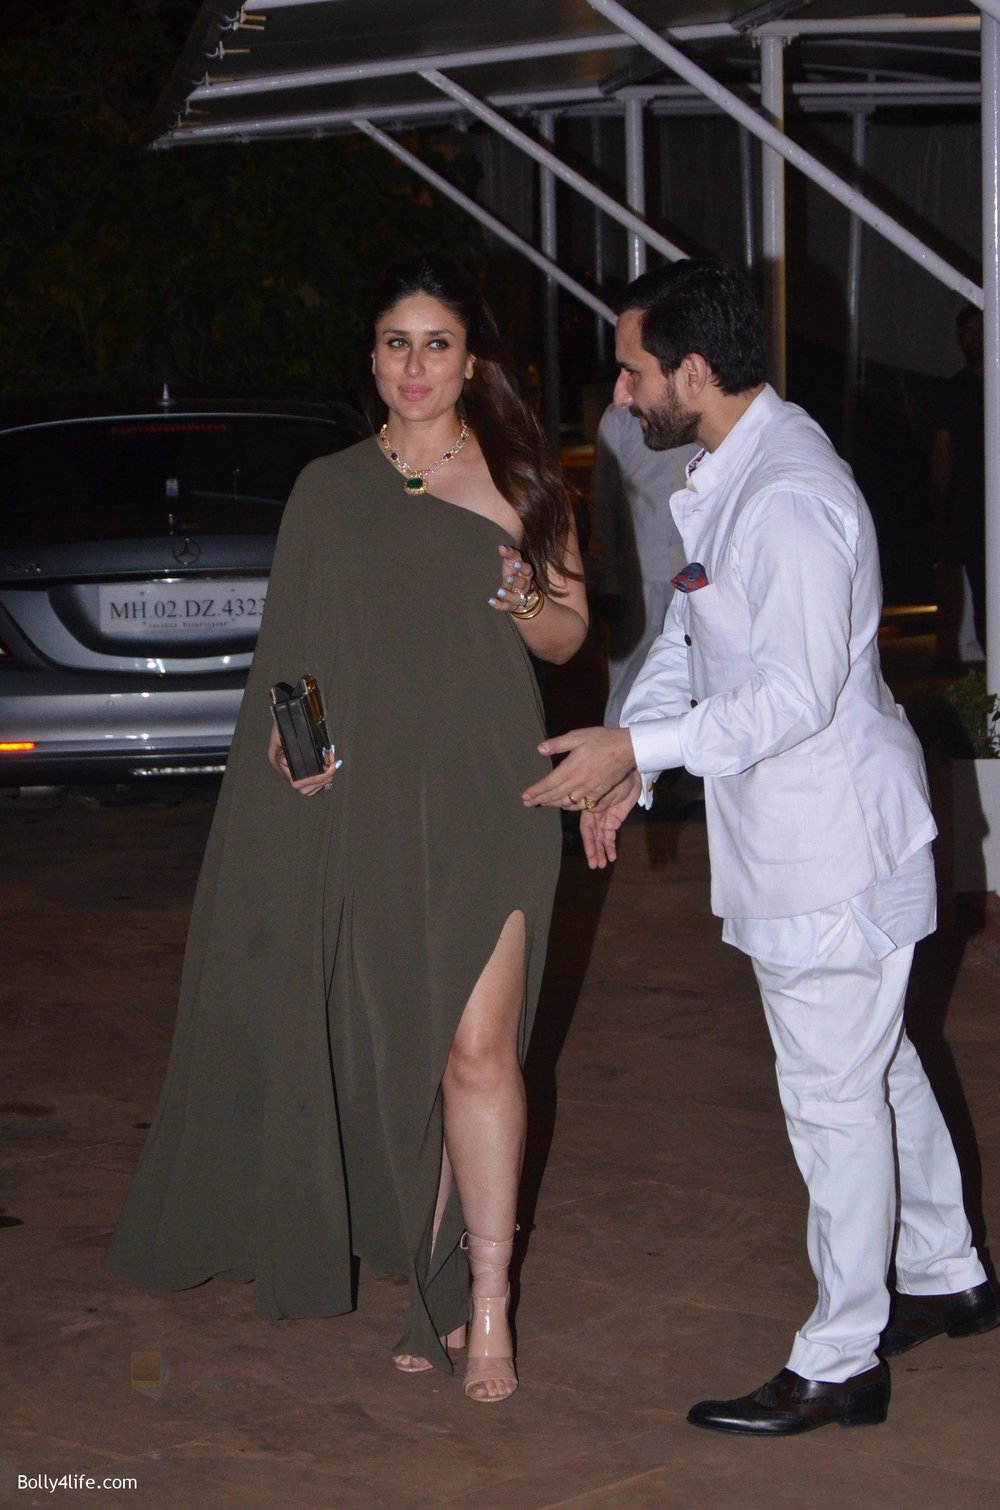 Saif-Ali-Khan-Kareena-Kapoor-at-Reema-jain-bday-party-in-Amadeus-NCPA-on-28th-Sept-2016-875.jpg